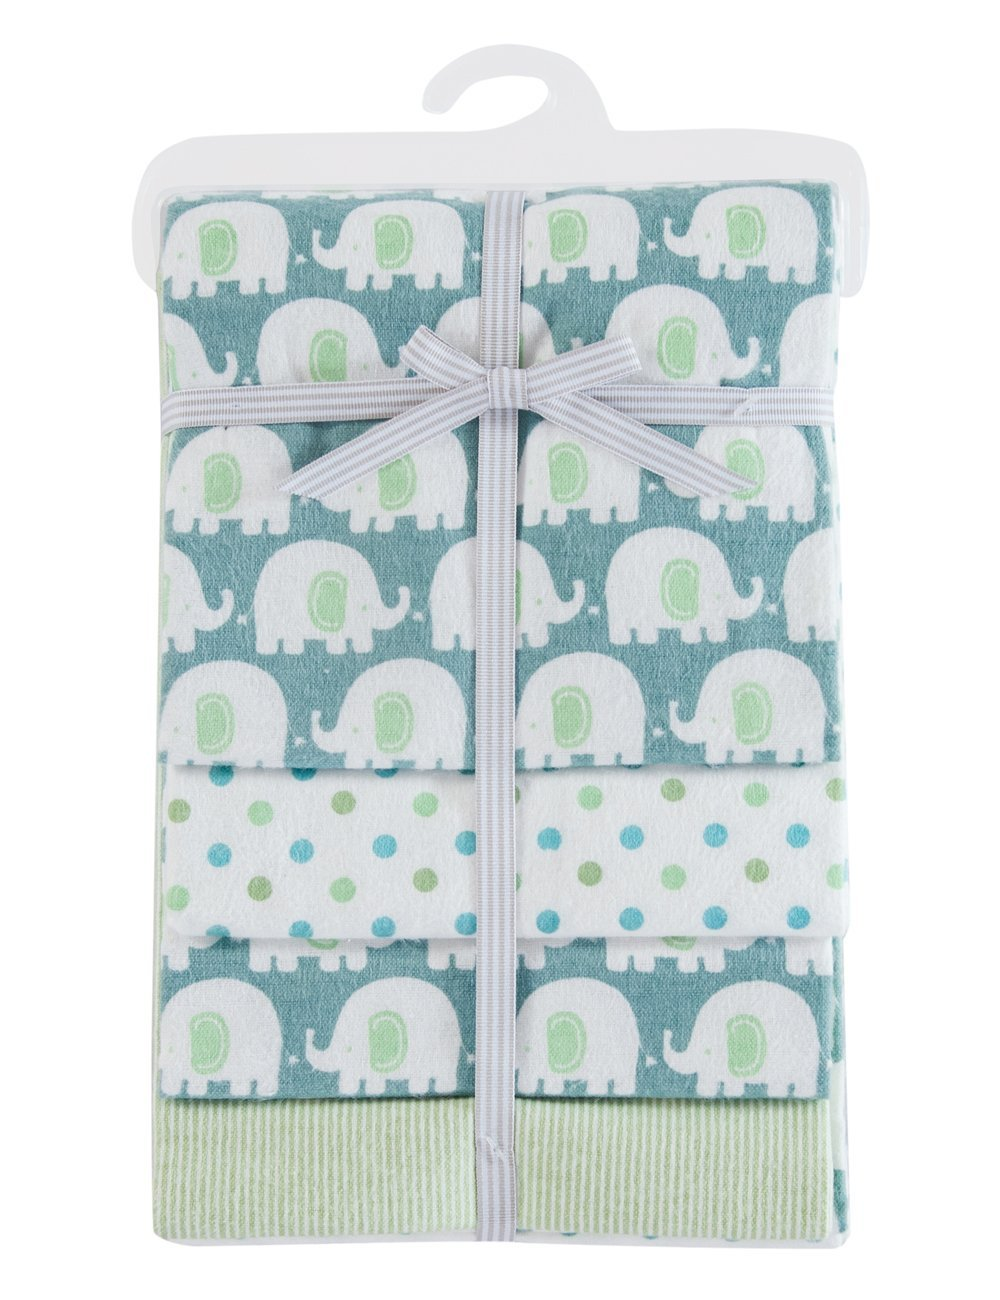 PHF 100% Cotton Flannel Receiving Blankets Warm for Winter Unisex 30'' x 40'' Green 4 Count